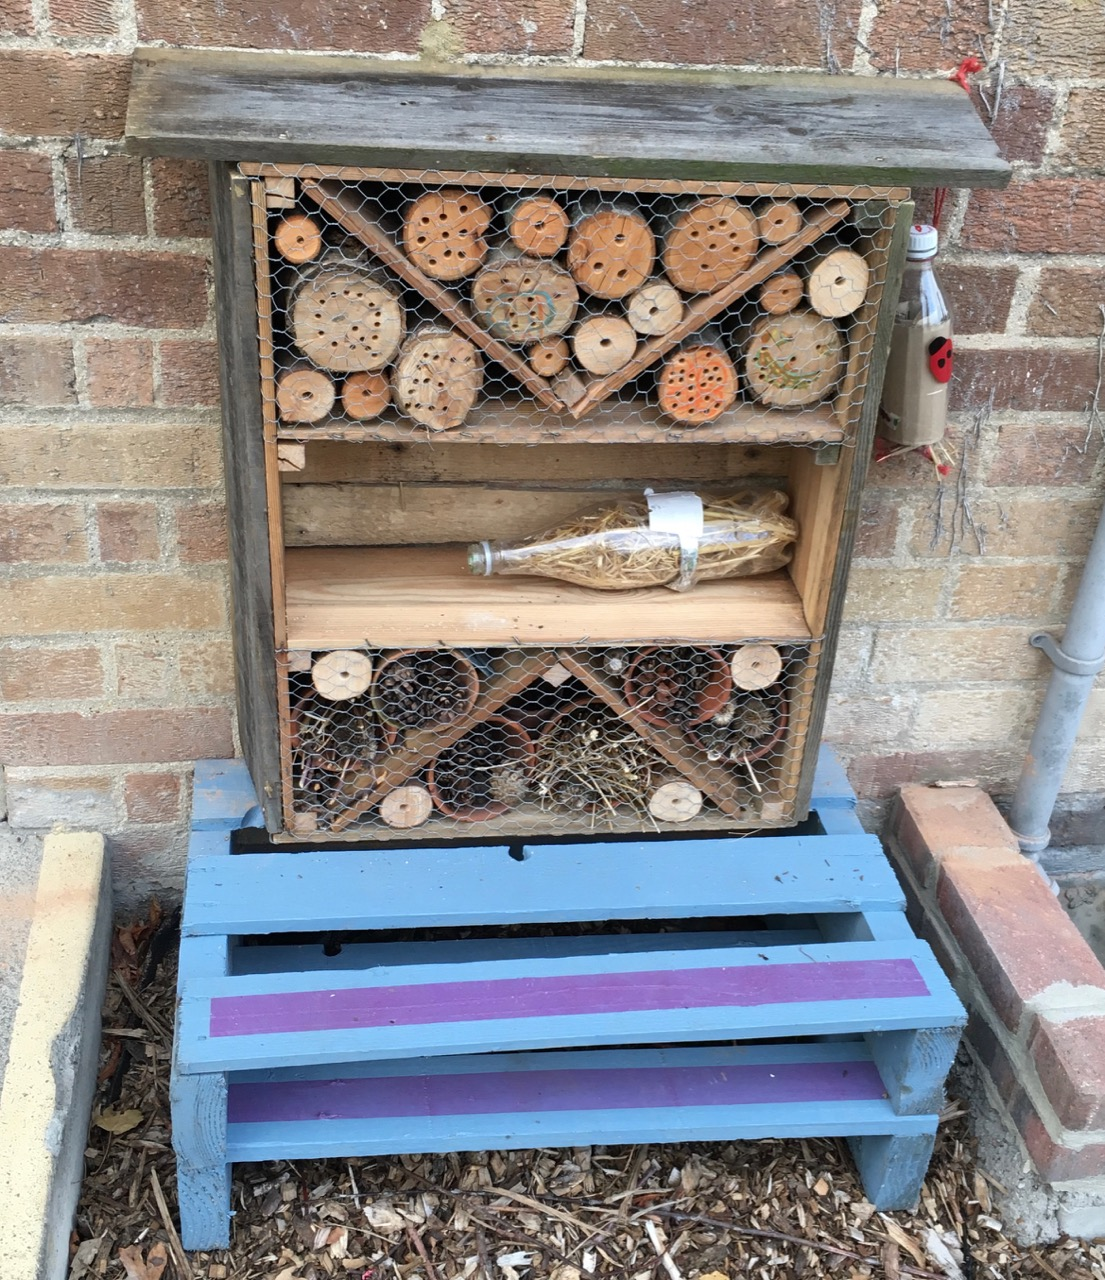 October 2018: mini bug hotel made from waste materials by parent volunteers and some school students. It was made at Nightingale community garden.